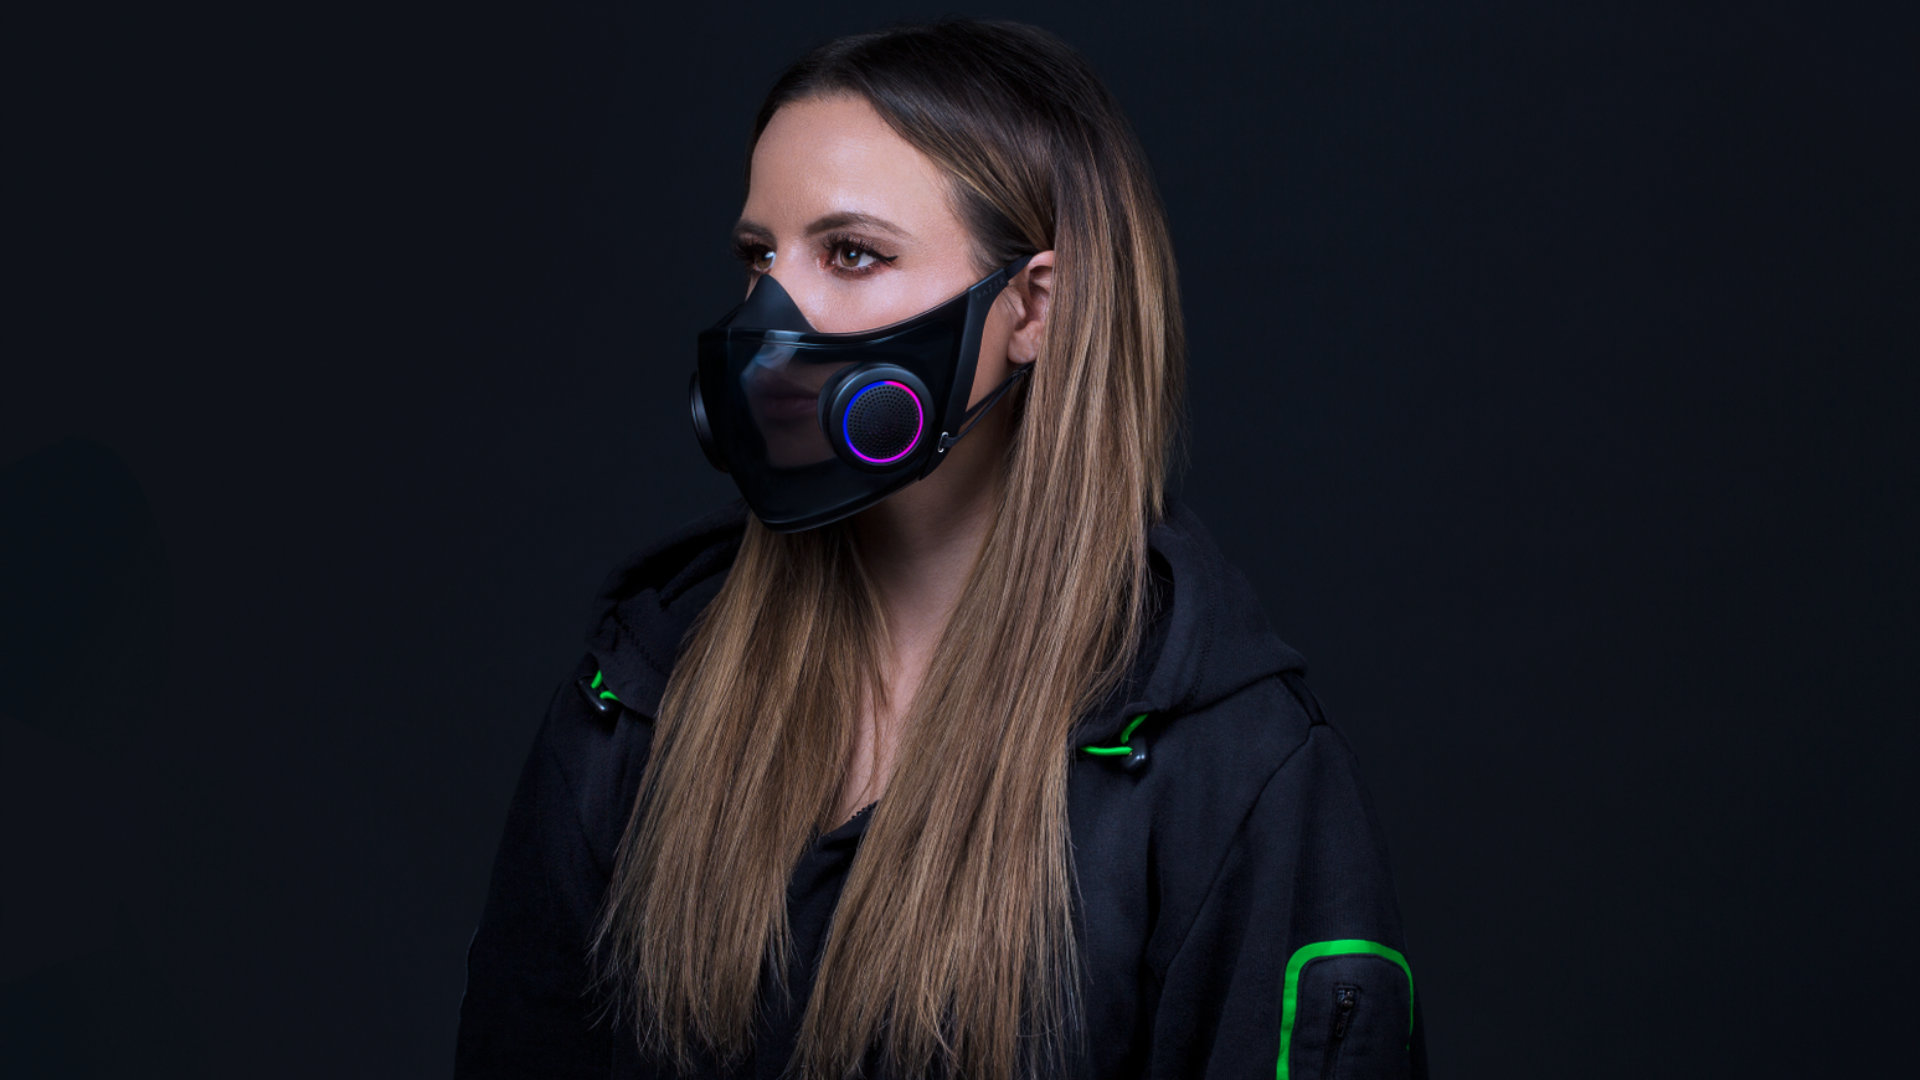 Razer's new face mask looks like it's straight out of The Division